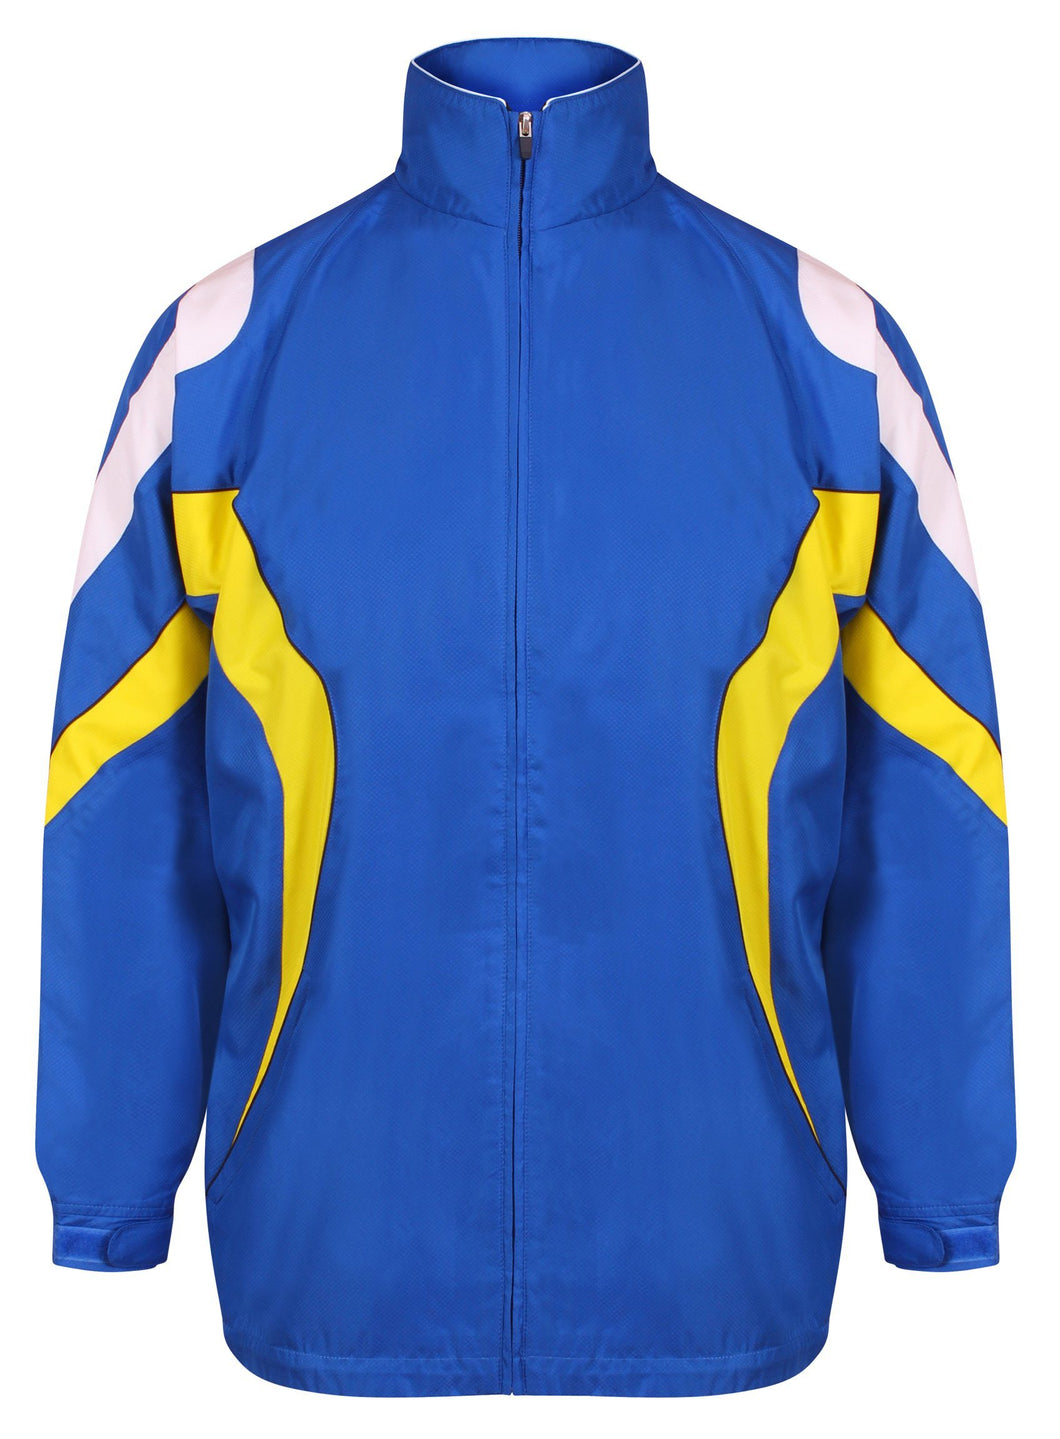 Rio Jacket Gazelle Sports UK Yes XS Col A) ROYAL